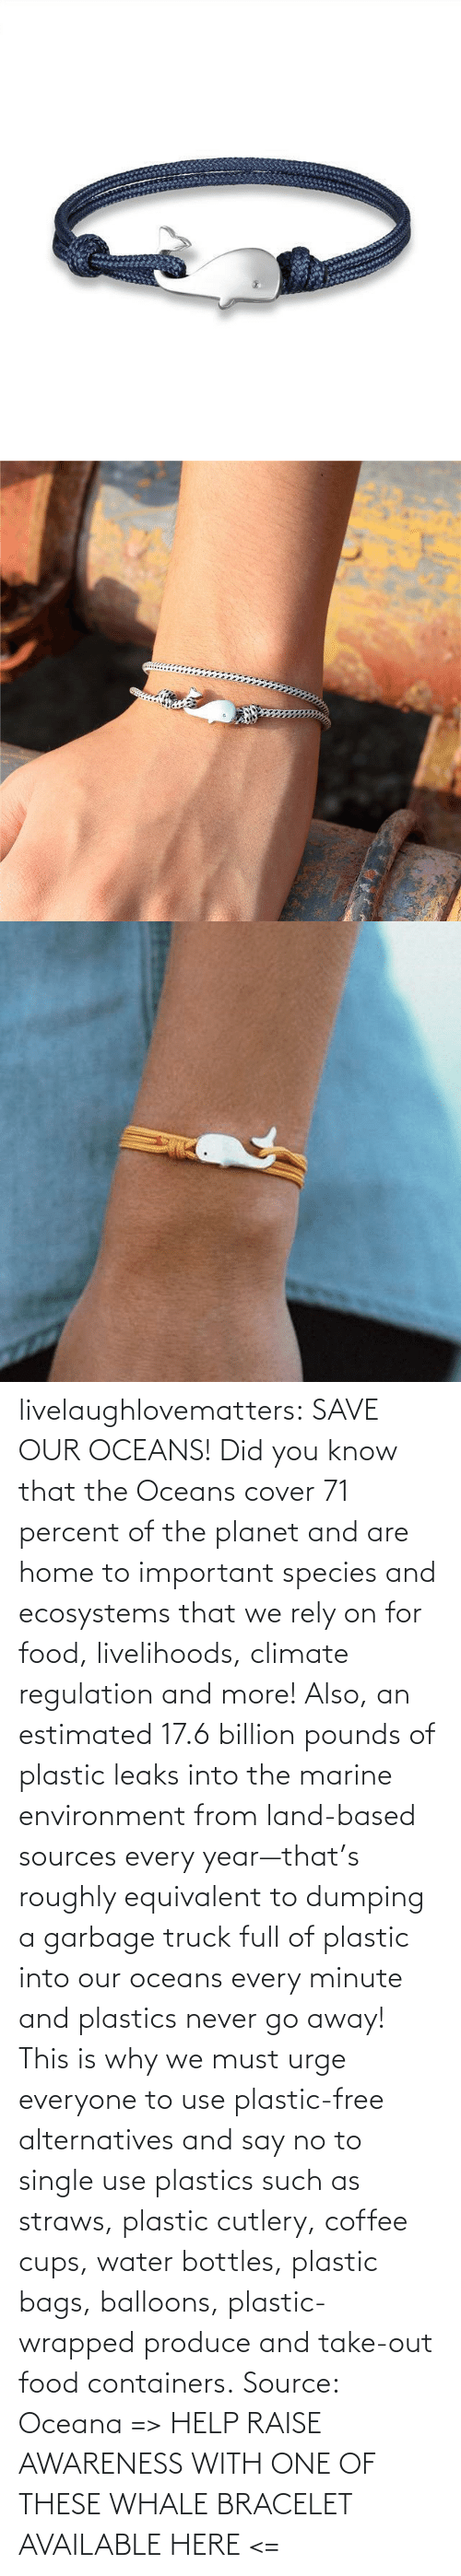 Important: livelaughlovematters: SAVE OUR OCEANS!  Did you know that the Oceans cover 71 percent of the planet and are home to important species and ecosystems that we rely on for food, livelihoods, climate regulation and more! Also, an estimated 17.6 billion pounds of plastic leaks into the marine environment from land-based sources every year—that's roughly equivalent to dumping a garbage truck full of plastic into our oceans every minute and plastics never go away! This is why we must urge everyone to use plastic-free alternatives and say no to single use plastics such as straws, plastic cutlery, coffee cups, water bottles, plastic bags, balloons, plastic-wrapped produce and take-out food containers. Source: Oceana => HELP RAISE AWARENESS WITH ONE OF THESE WHALE BRACELET AVAILABLE HERE <=